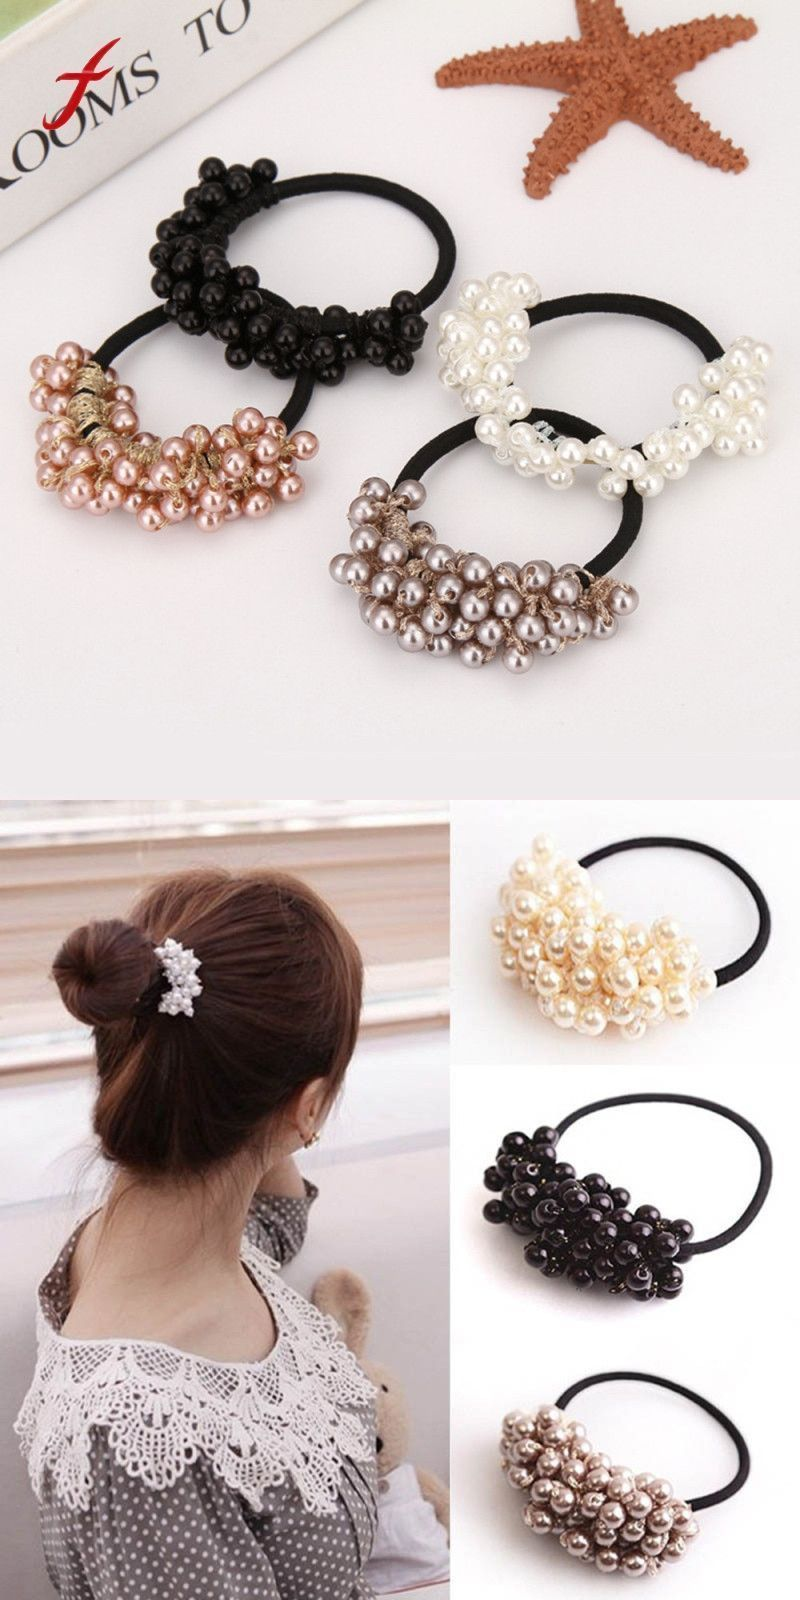 Apparel Accessories Elegant Women Fashion Summer Style Flower Simulated Pearls Elastic Hair Bands Girls Rope Ponytail Holder Hair Accessories